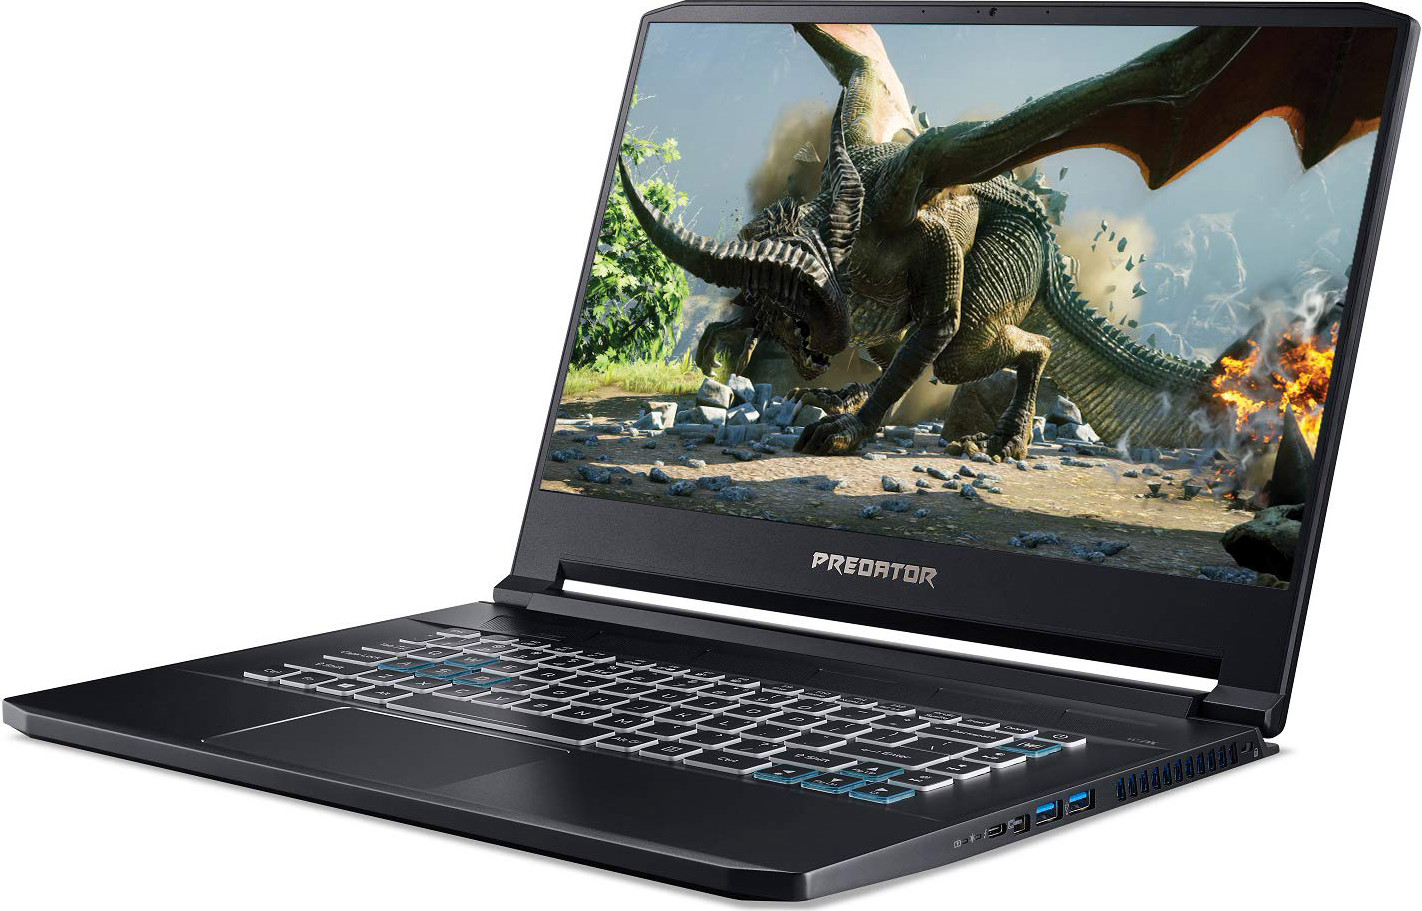 "Acer Predator Triton 500 Thin & Light Gaming Laptop, Intel Core i7-8750H, GeForce RTX 2060 with 6GB, 15.6"" Full HD 144Hz 3ms IPS Display, 16GB DDR4, 512GB PCIe NVMe SSD, RGB Keyboard, PT515-51-71VV"